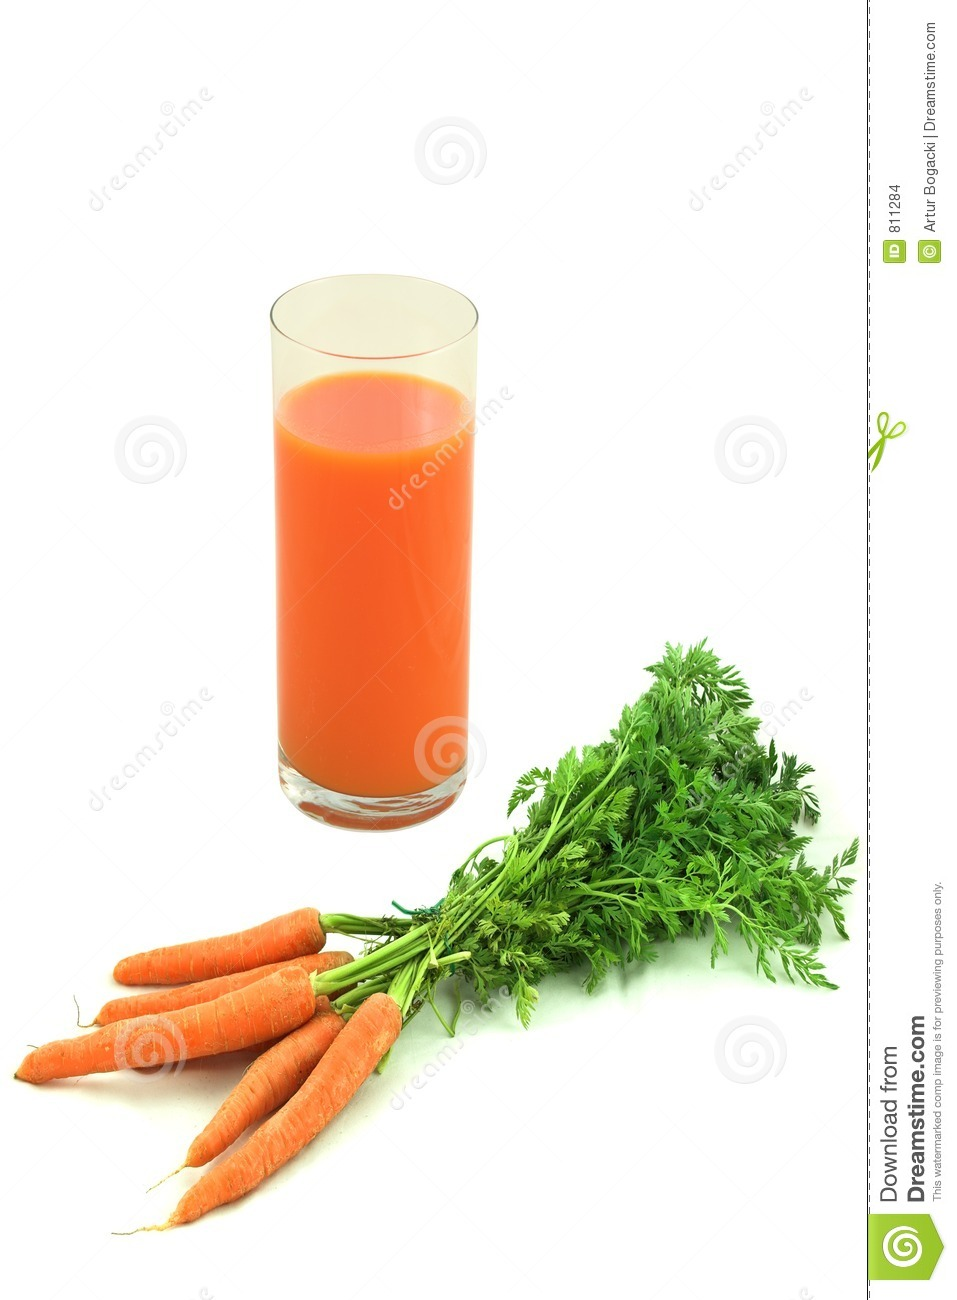 how to drink fresh carrot juice